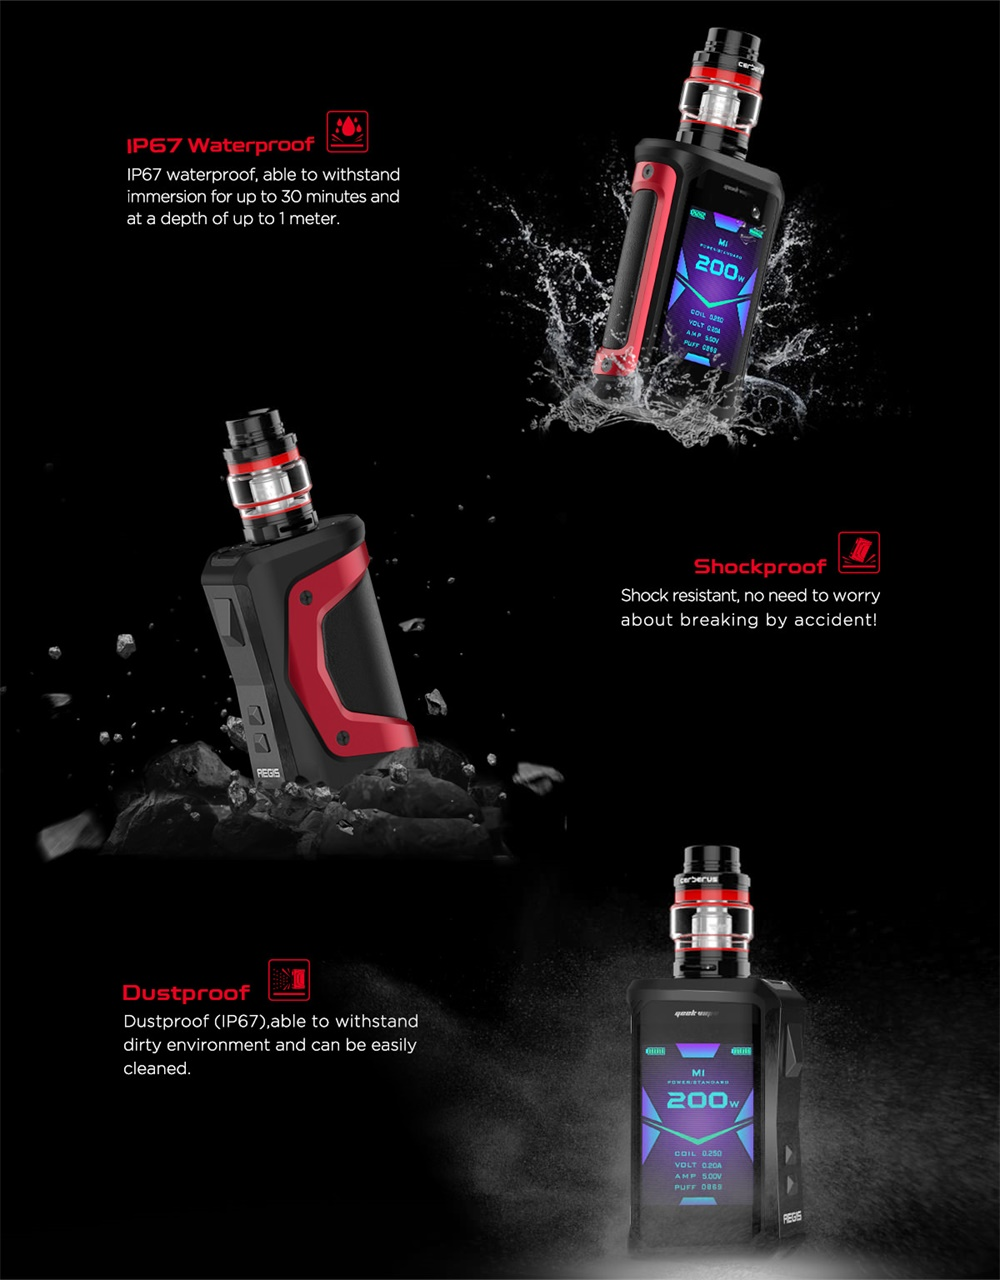 Geekvape Aegis X Kit IP67 waterproof /shockproof/dustproof